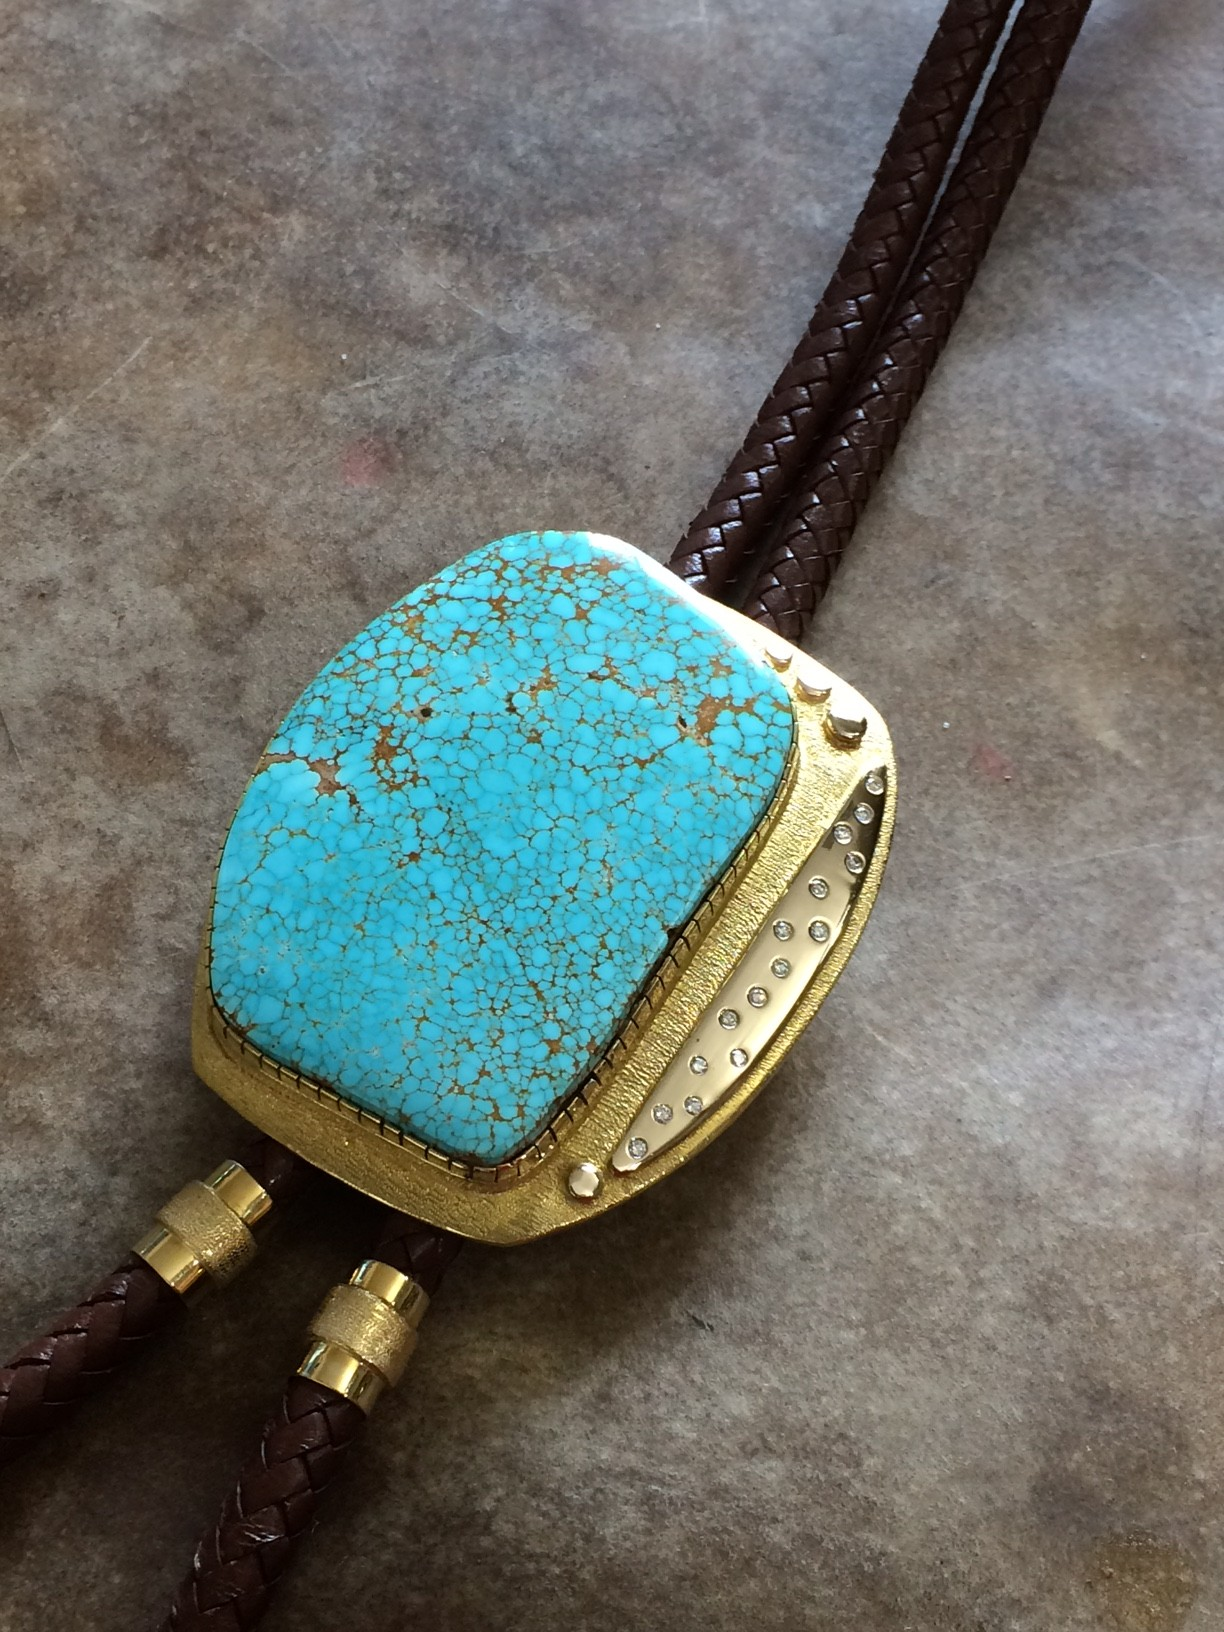 Gold and Turquoise Bola Tie